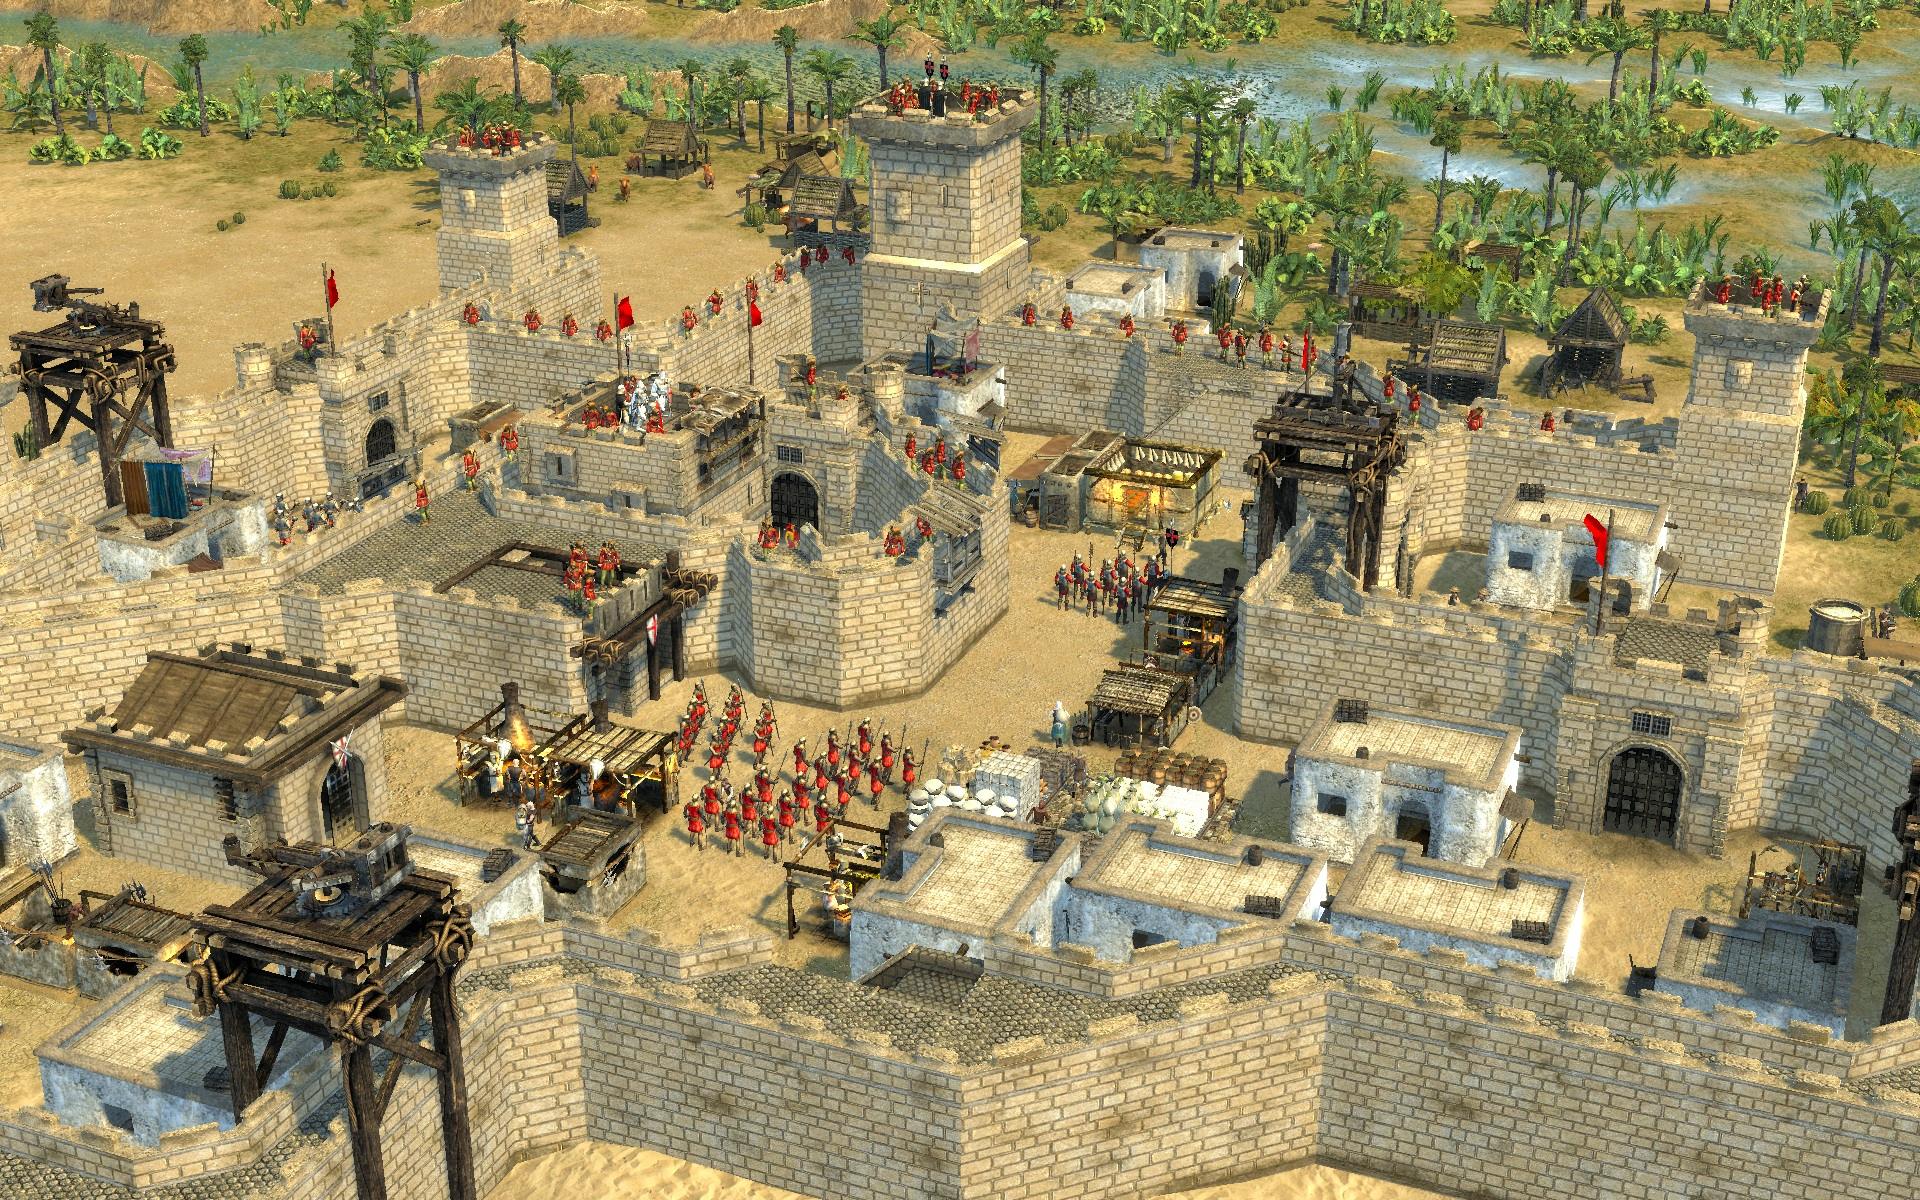 Stronghold Crusader II - because who doesn't like castles?